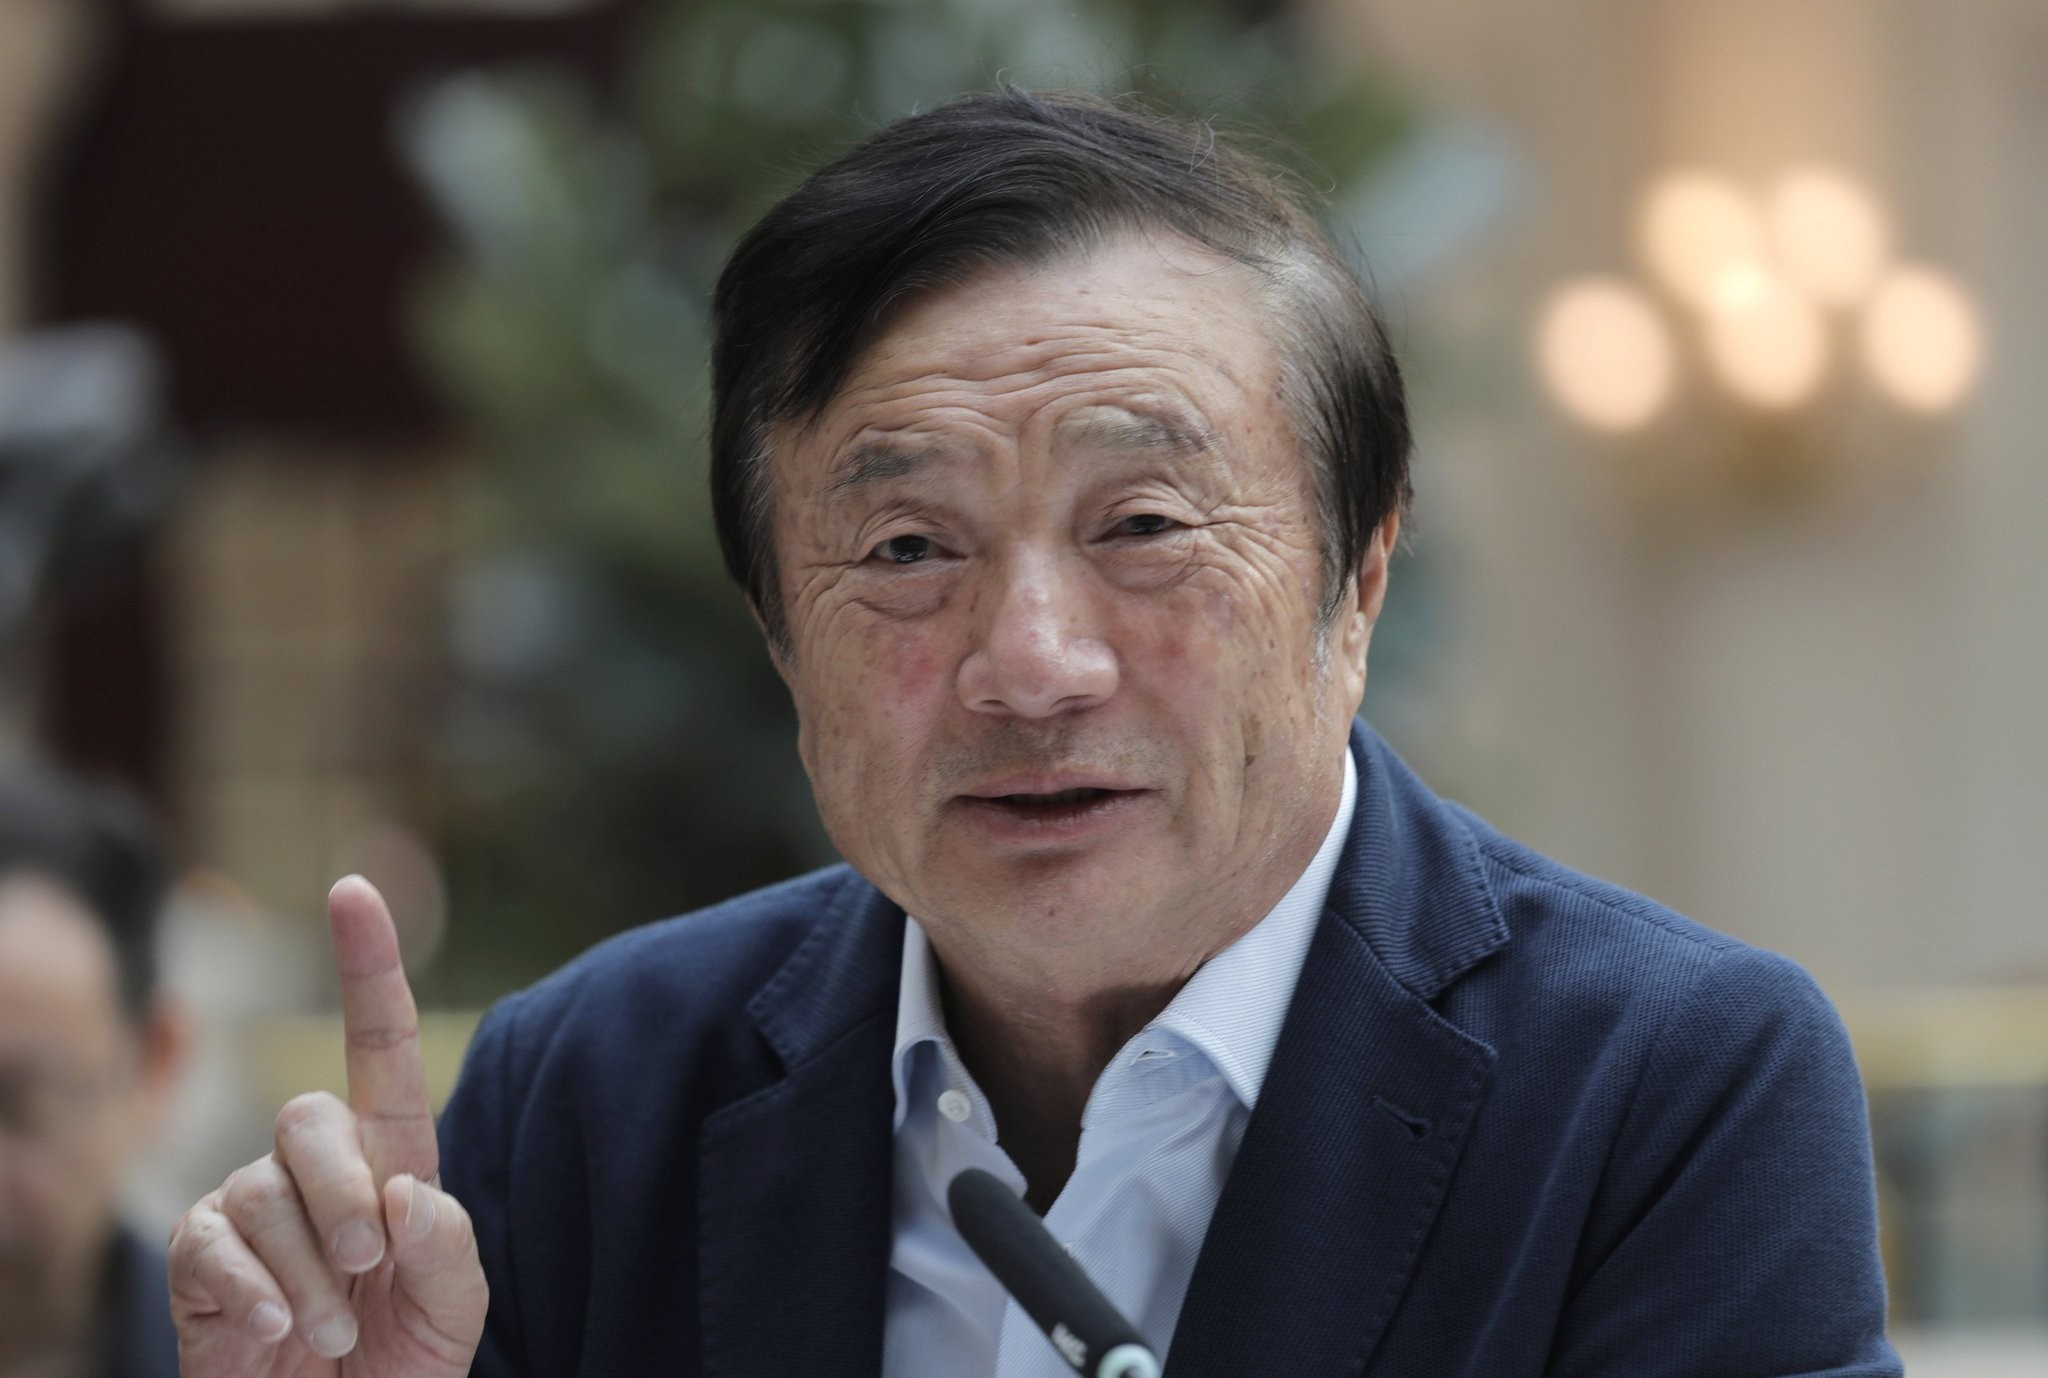 Ren Zhengfei, founder and CEO of Huawei, gestures during a round table meeting with the media in Shenzhen city, south China's Guangdong province, Tuesday, Jan. 15, 2019. (AP Photo)